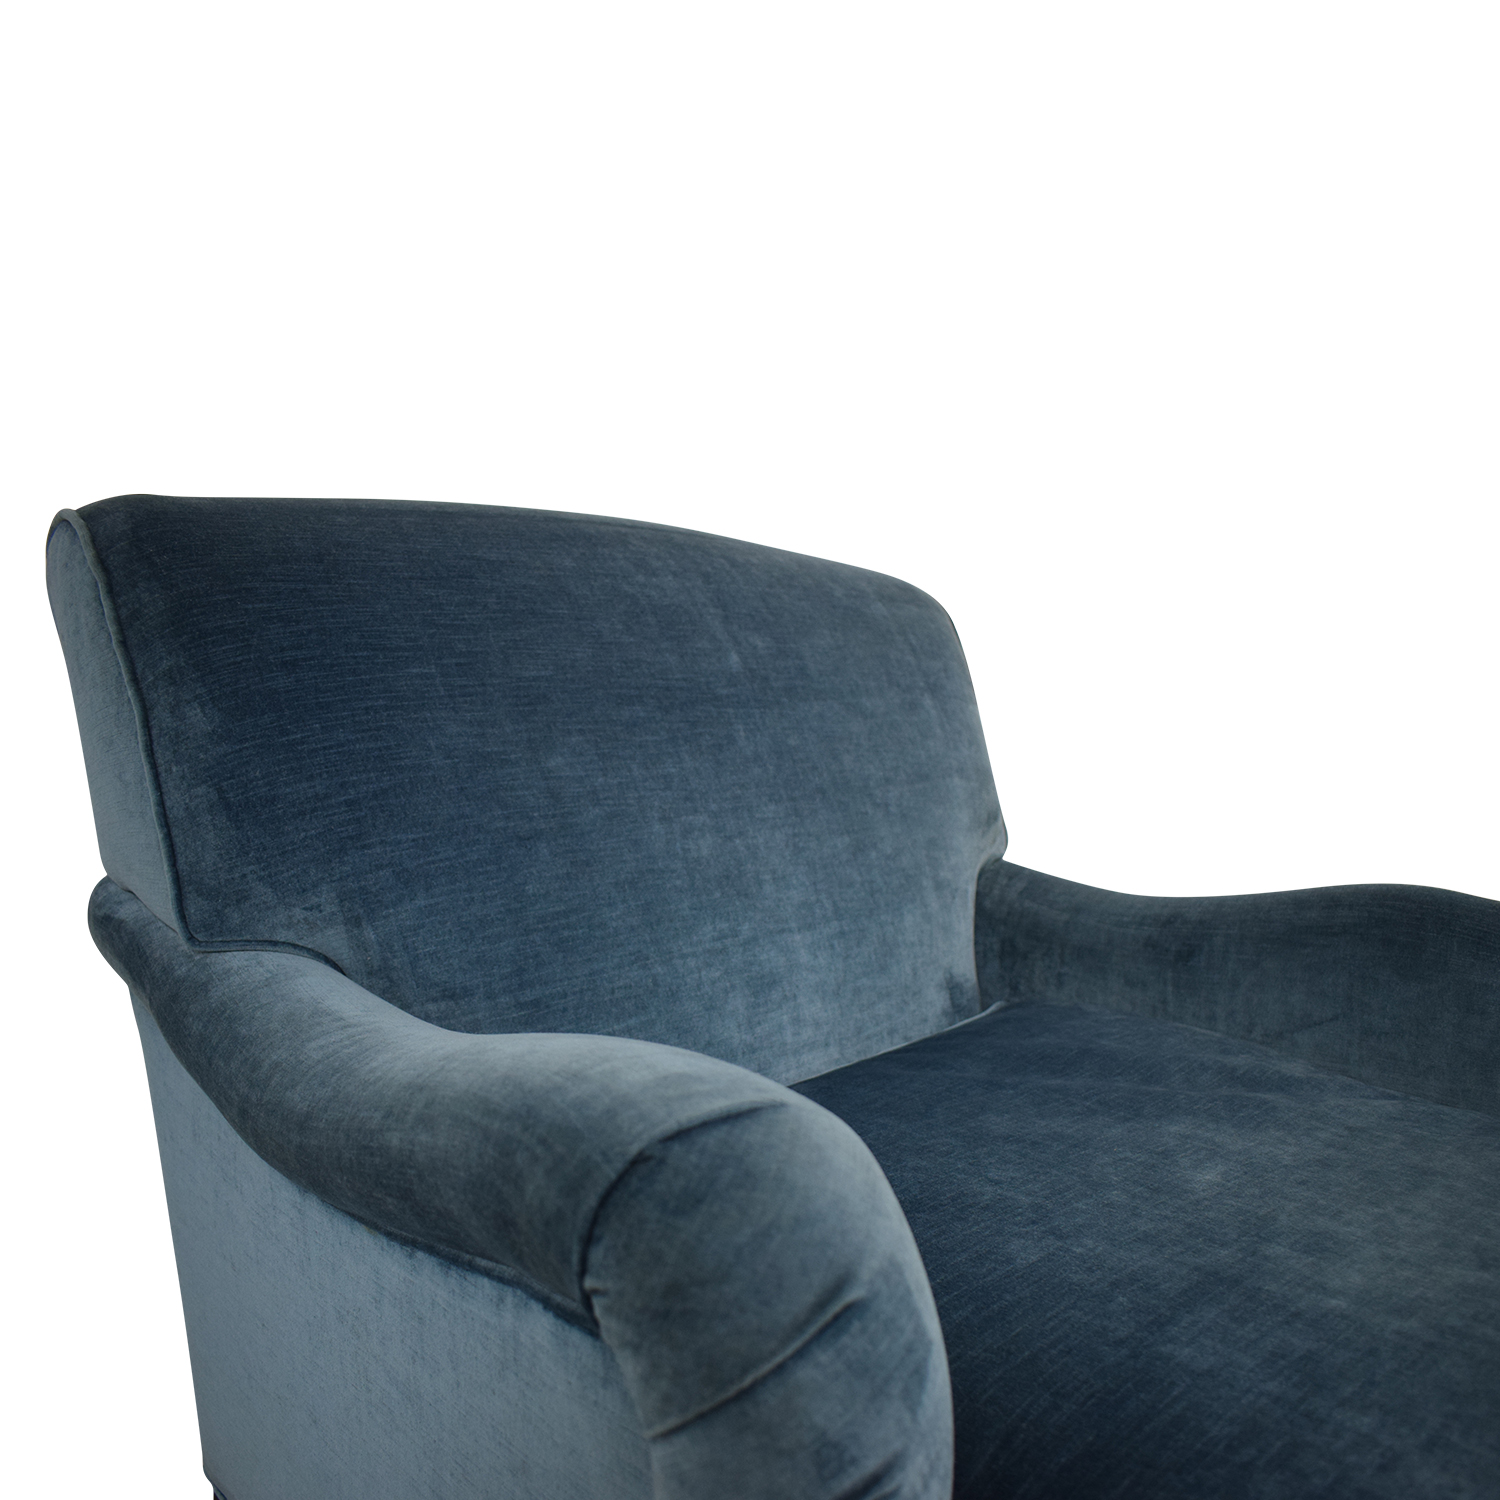 Mitchell Gold + Bob Williams Mitchell Gold + Bob Williams Blue Velvet Chaise Lounge on Castors dimensions